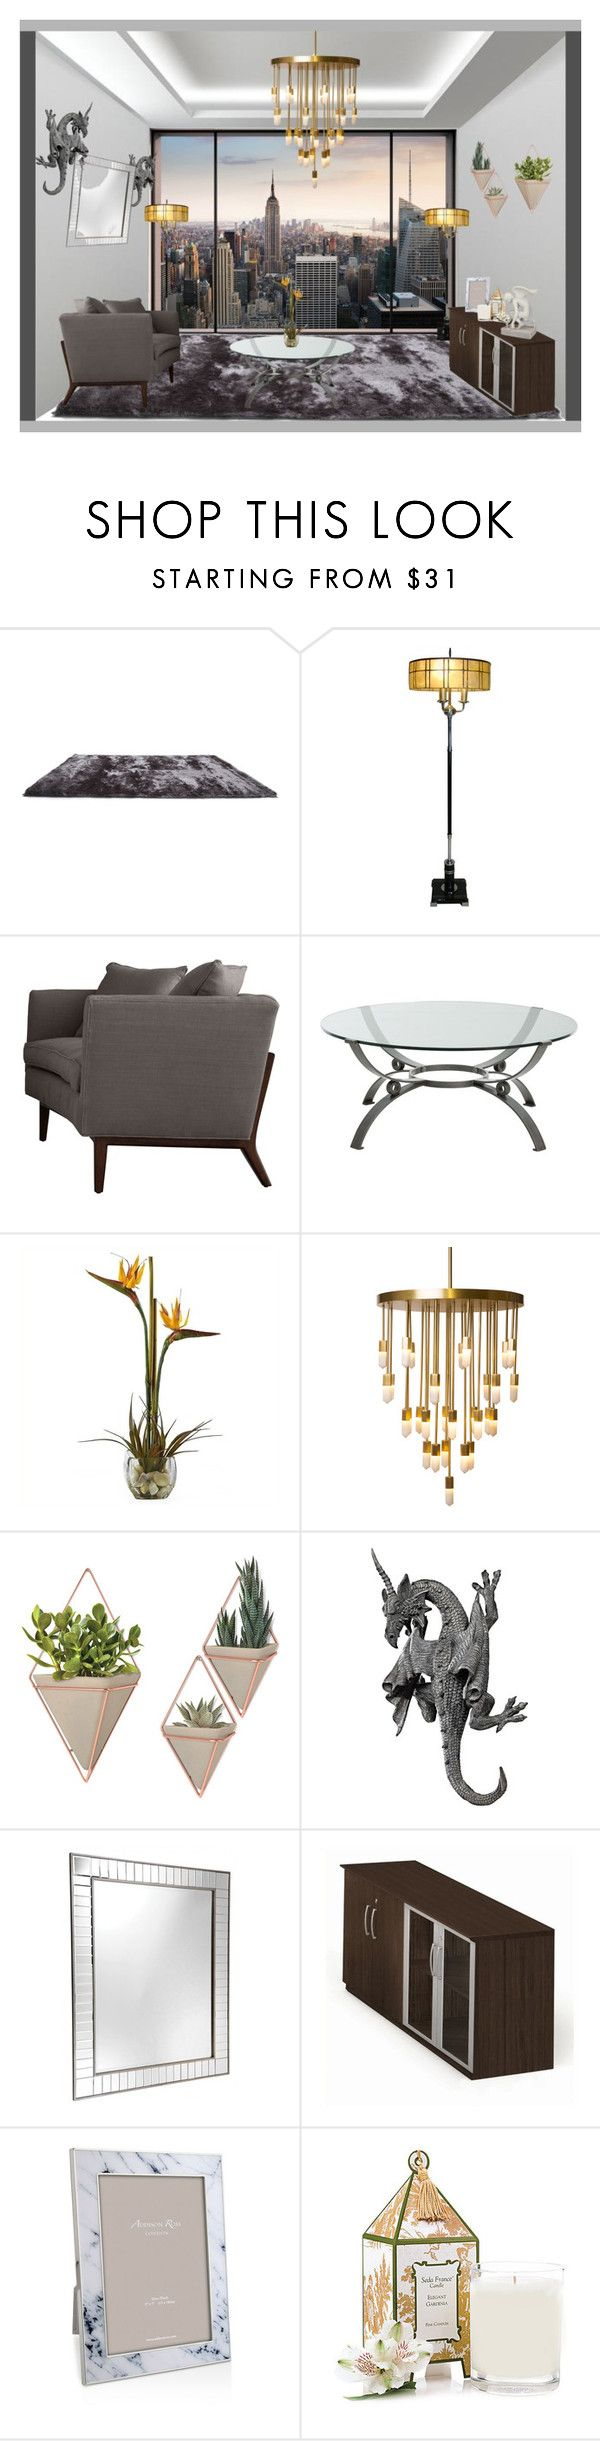 """City View"" by karimaputri on Polyvore featuring interior, interiors, interior design, home, home decor, interior decorating, Komar, Gold Sparrow, Arteriors and Nearly Natural"